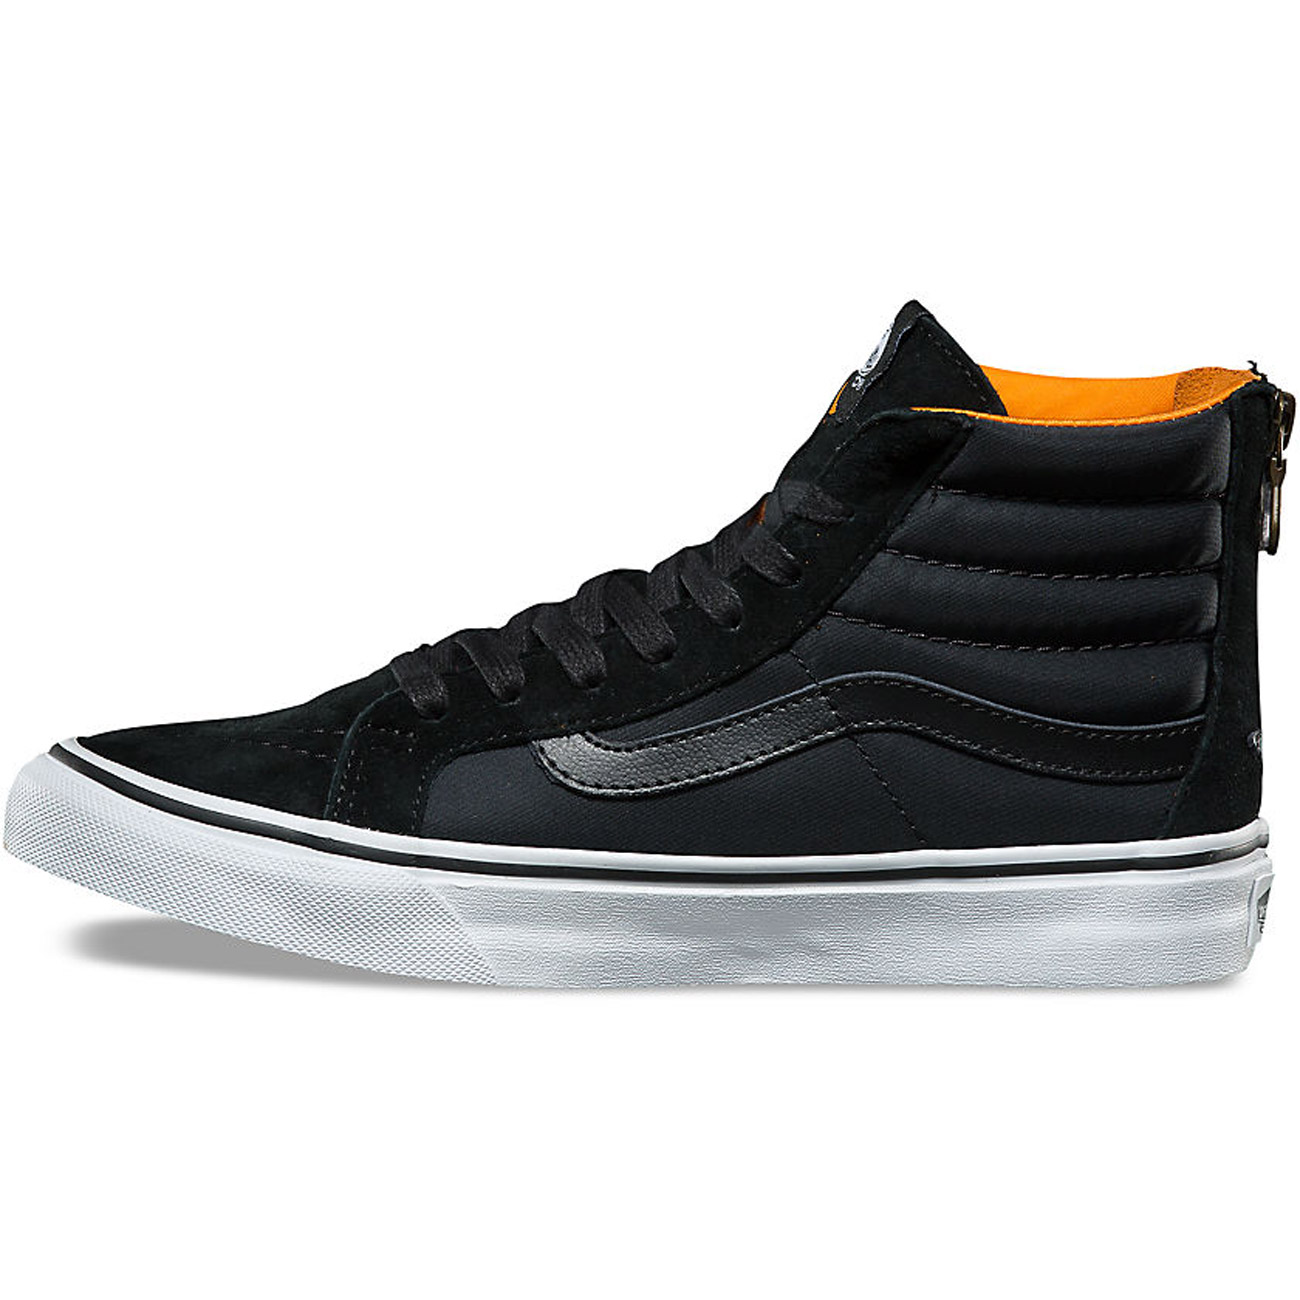 vans herren sneaker ua sk8 hi slim zip ebay. Black Bedroom Furniture Sets. Home Design Ideas